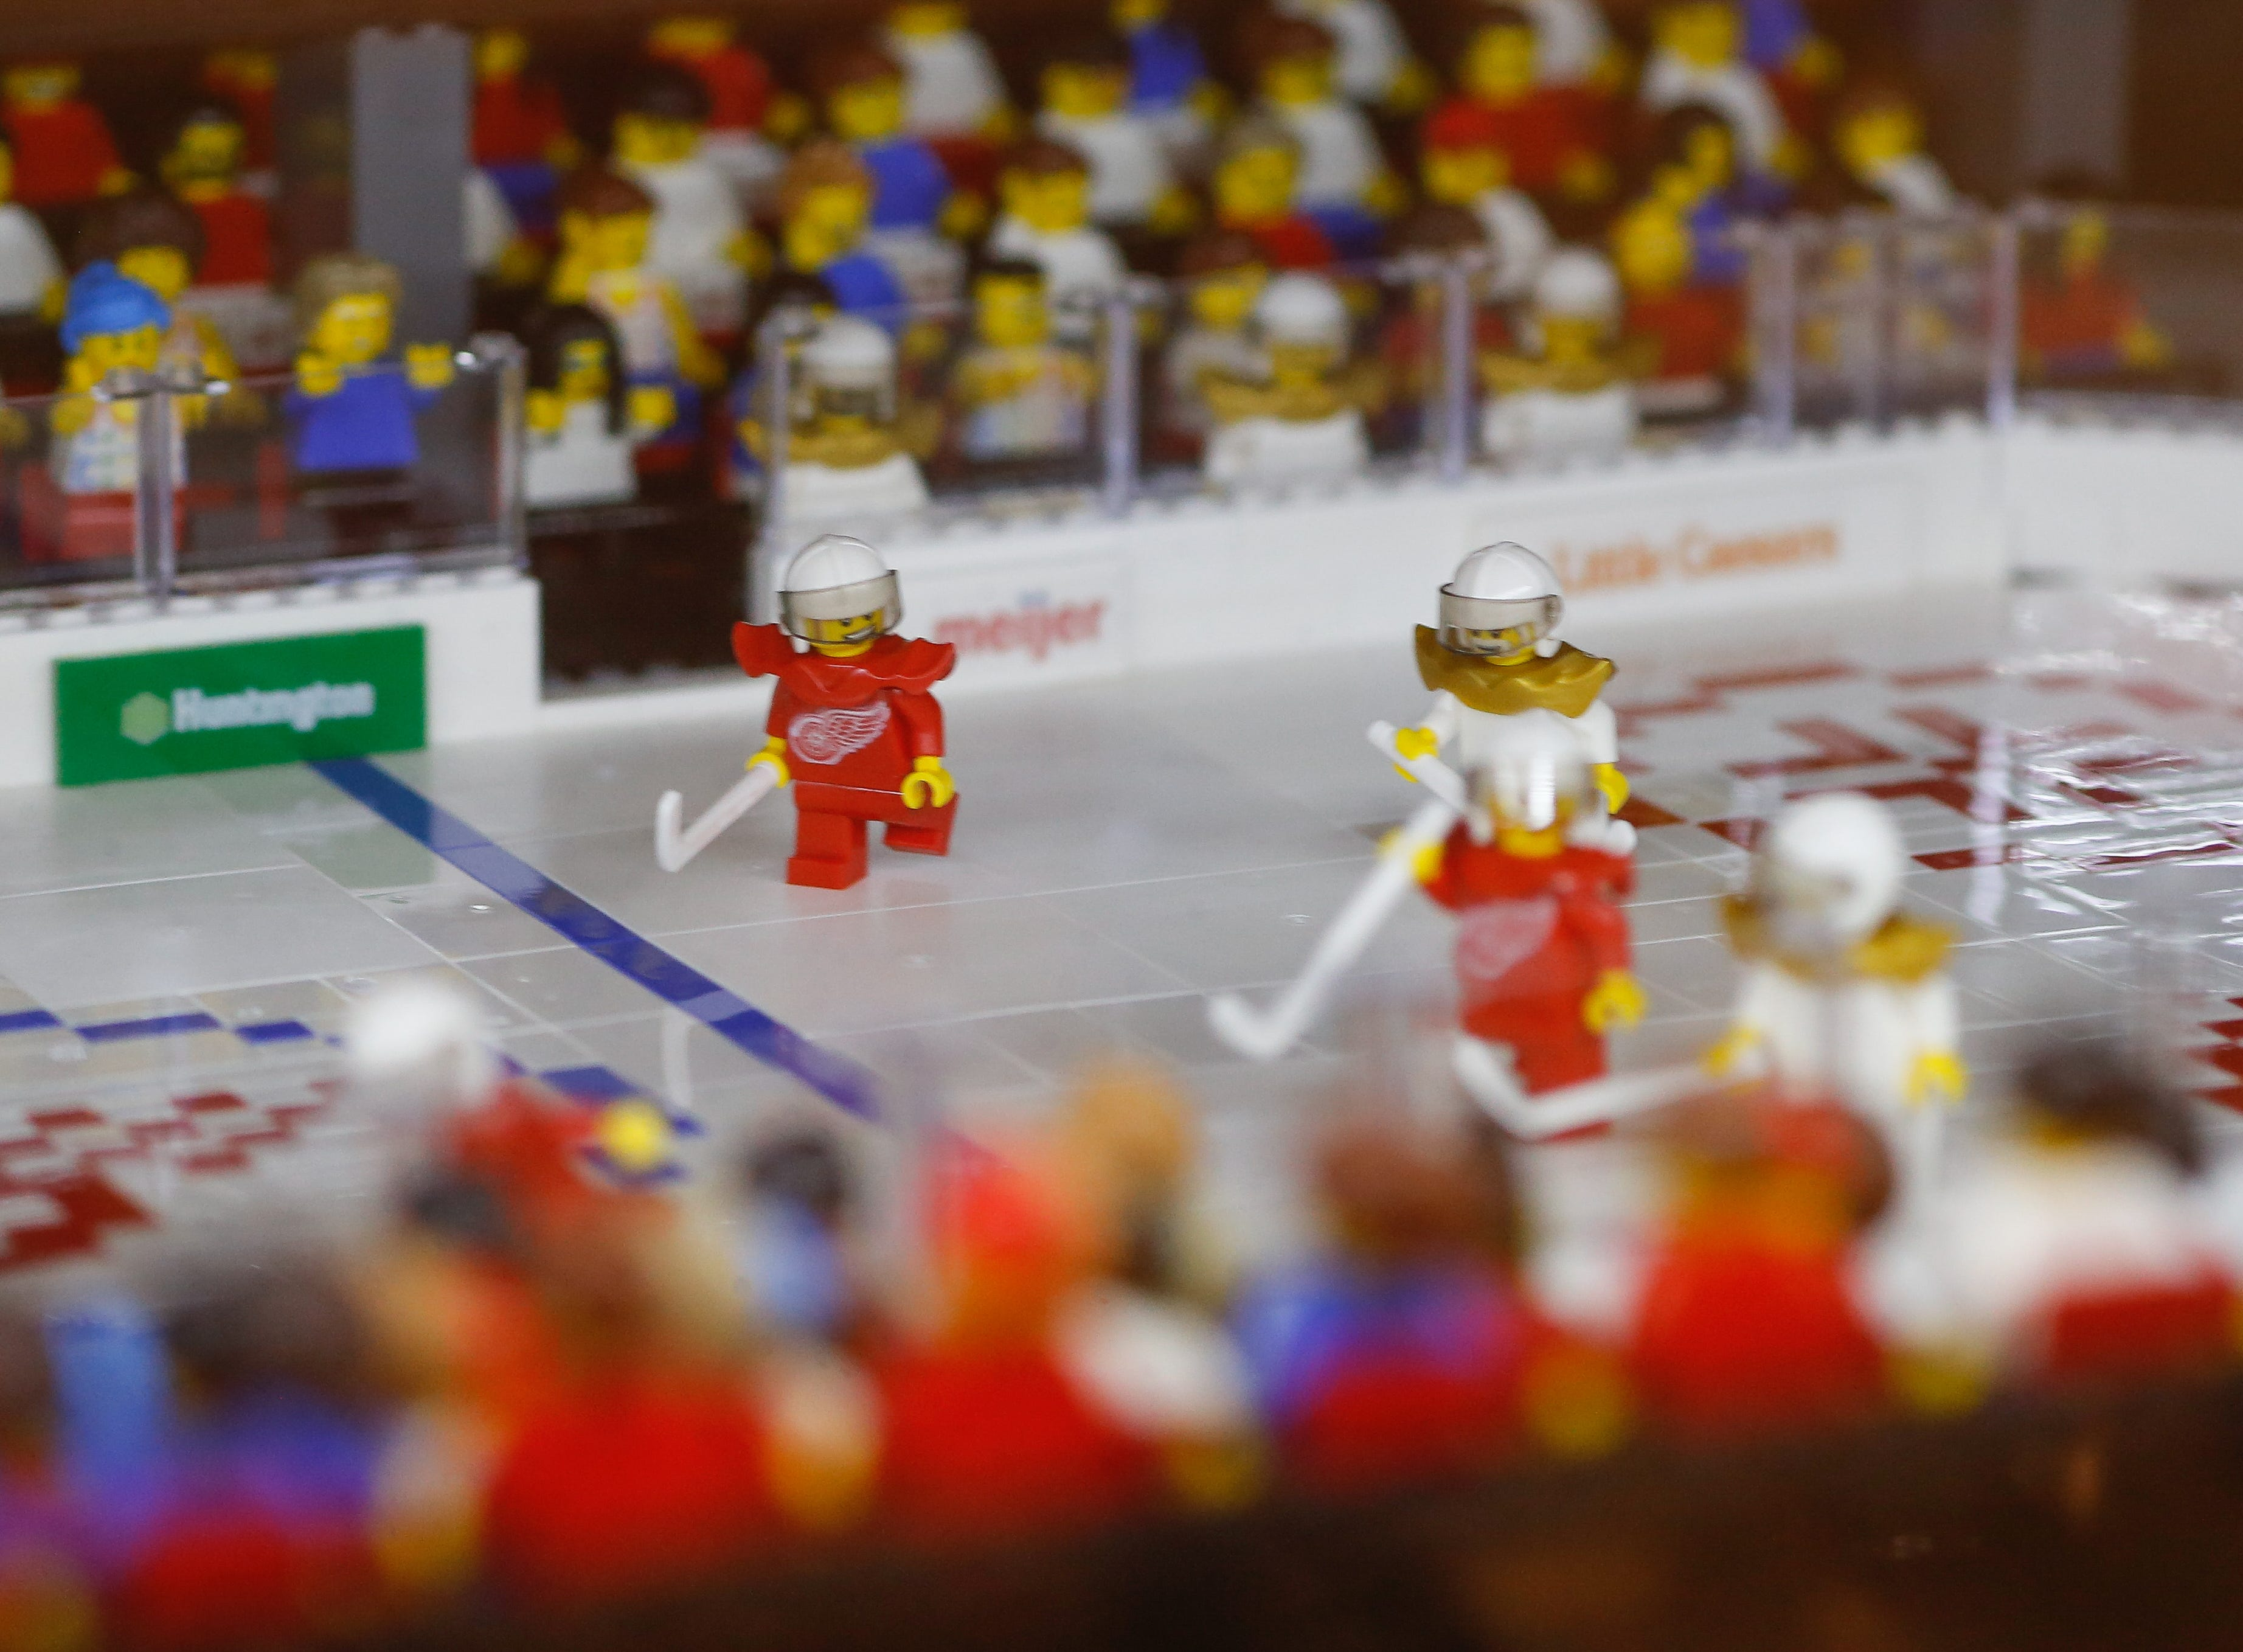 A mini-figure of a Red Wing player skates into the action. Even the boards carry logos of actual sponsors.